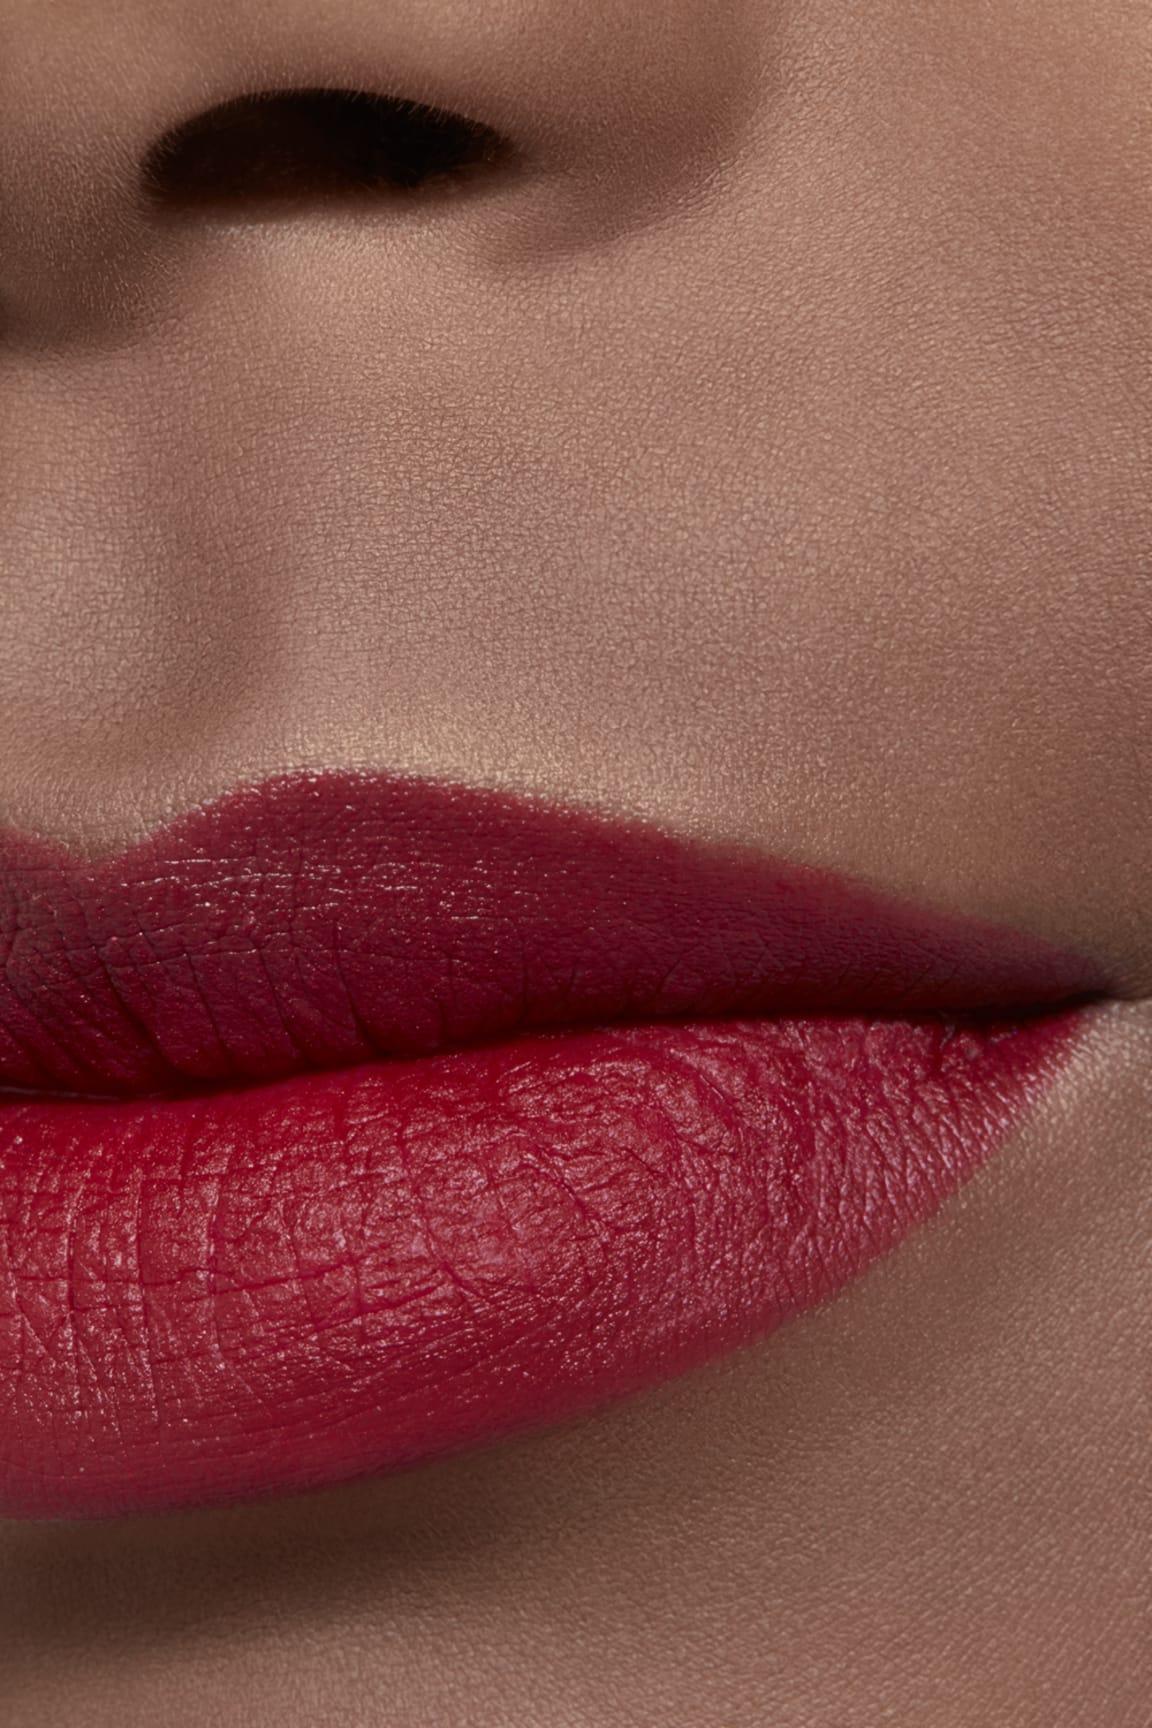 Application makeup visual 2 - ROUGE ALLURE VELVET LE LION DE CHANEL 58 - ROUGE VIE